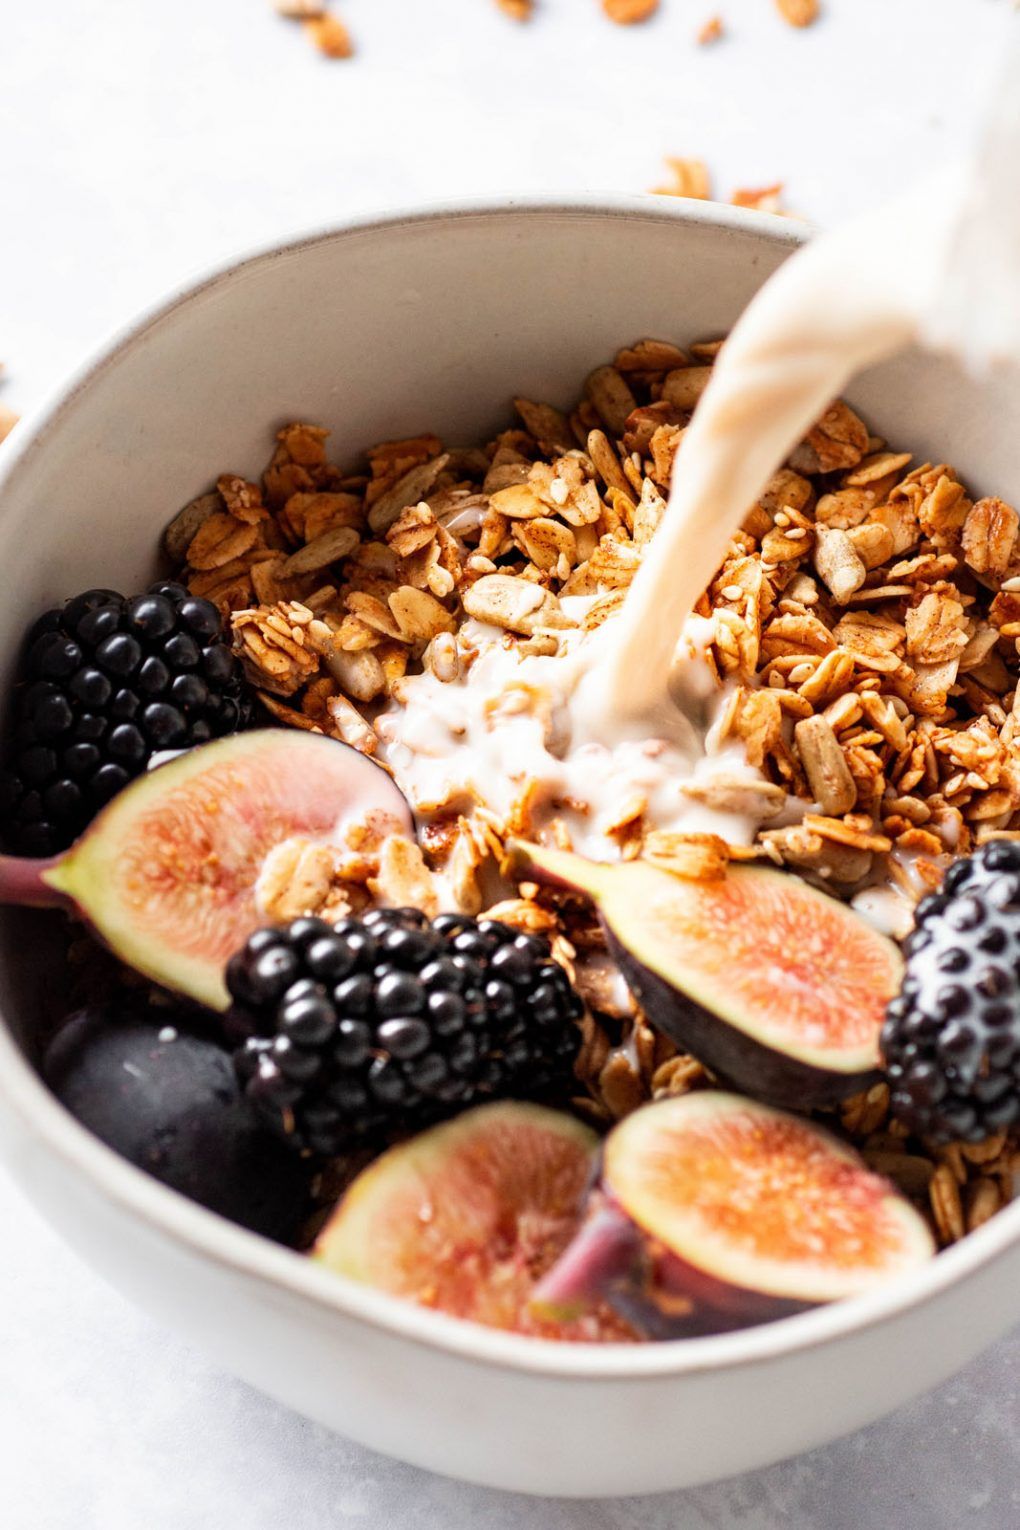 45 degree angle shot of a small white bowl filled with maple sesame granola, cut figs, and blackberries with milk pouring in. On a white background with scattered granola around the bowl.